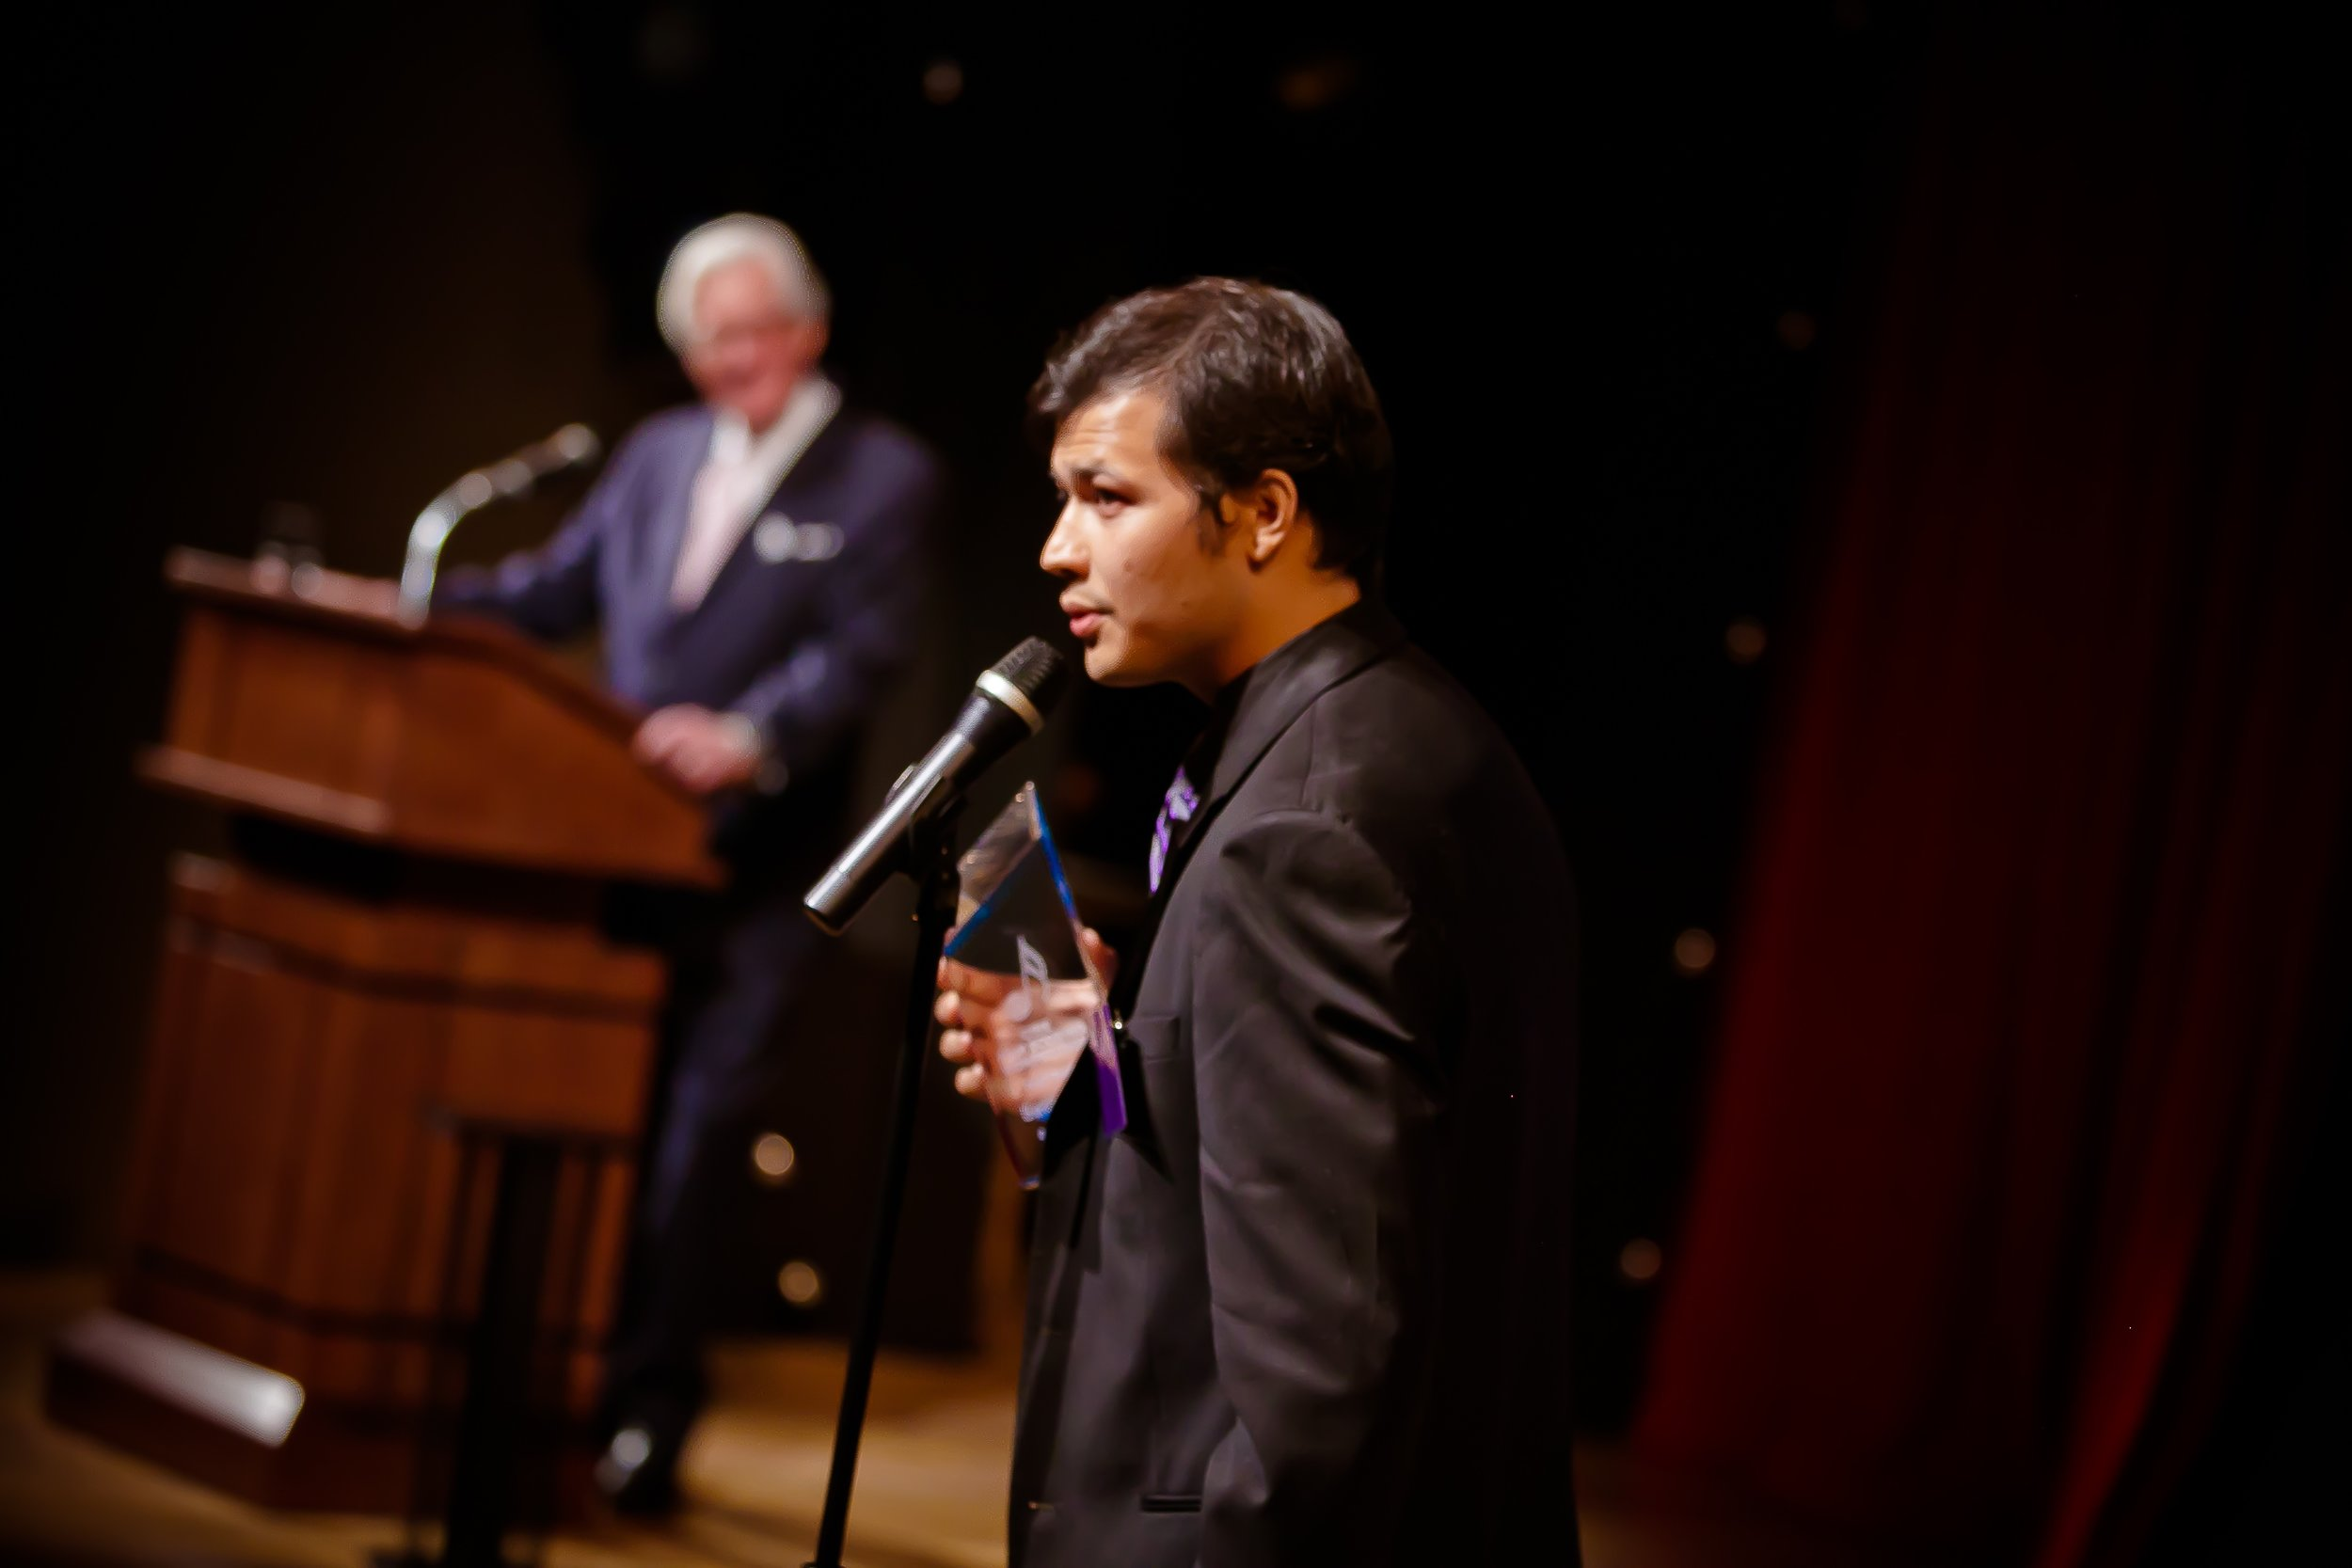 Seth Tsui receiving the first place award in the 2013 Marvin Hamlisch competition (CINE Film Scoring Competition). Every year, hundreds of composers from around the world compete by composing unique scores to the same film. The winner is determined on the strength of the music alone, by a panel of judges including Mychael Dynna (Life of Pi), George S Clinton (chair of film scoring at Berklee) and Dan Carlin (chair of film scoring at USC). The competition has less than 10 winners in its history. Since 2014 Seth has been on its panel of judges.